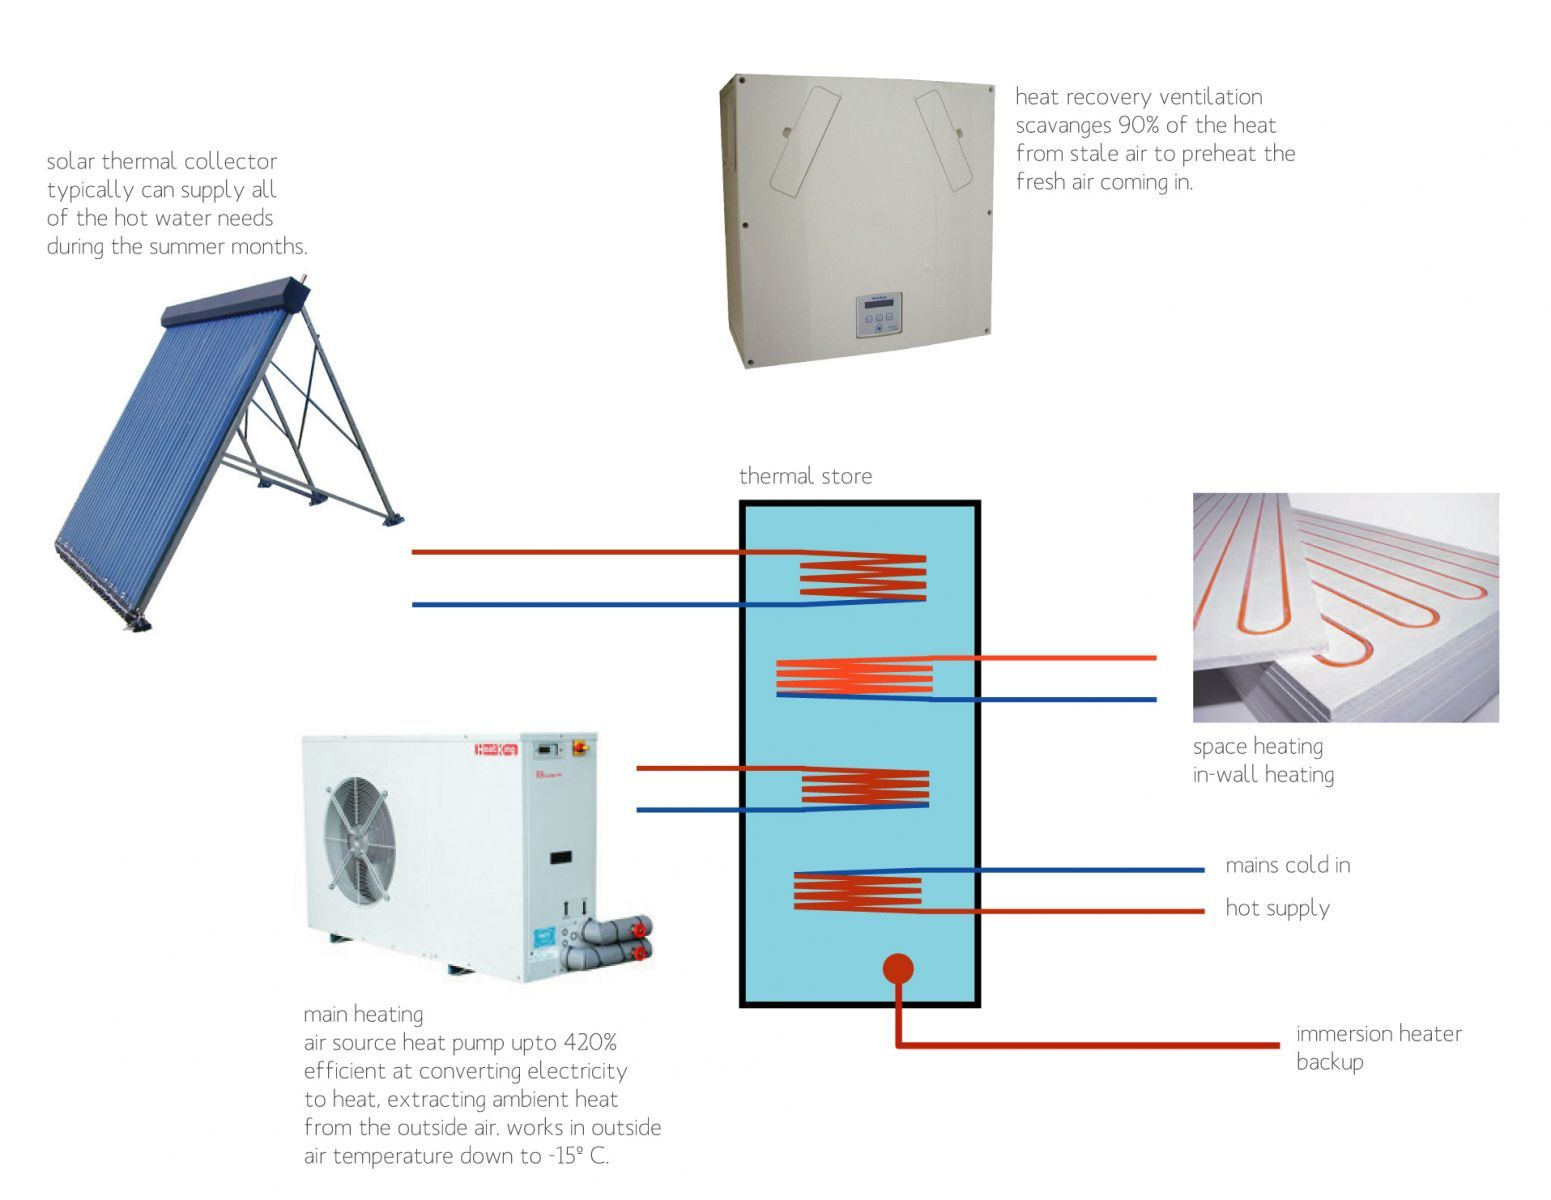 Eco Heating System Diagram Jpg 1551 1200 Heat Recovery